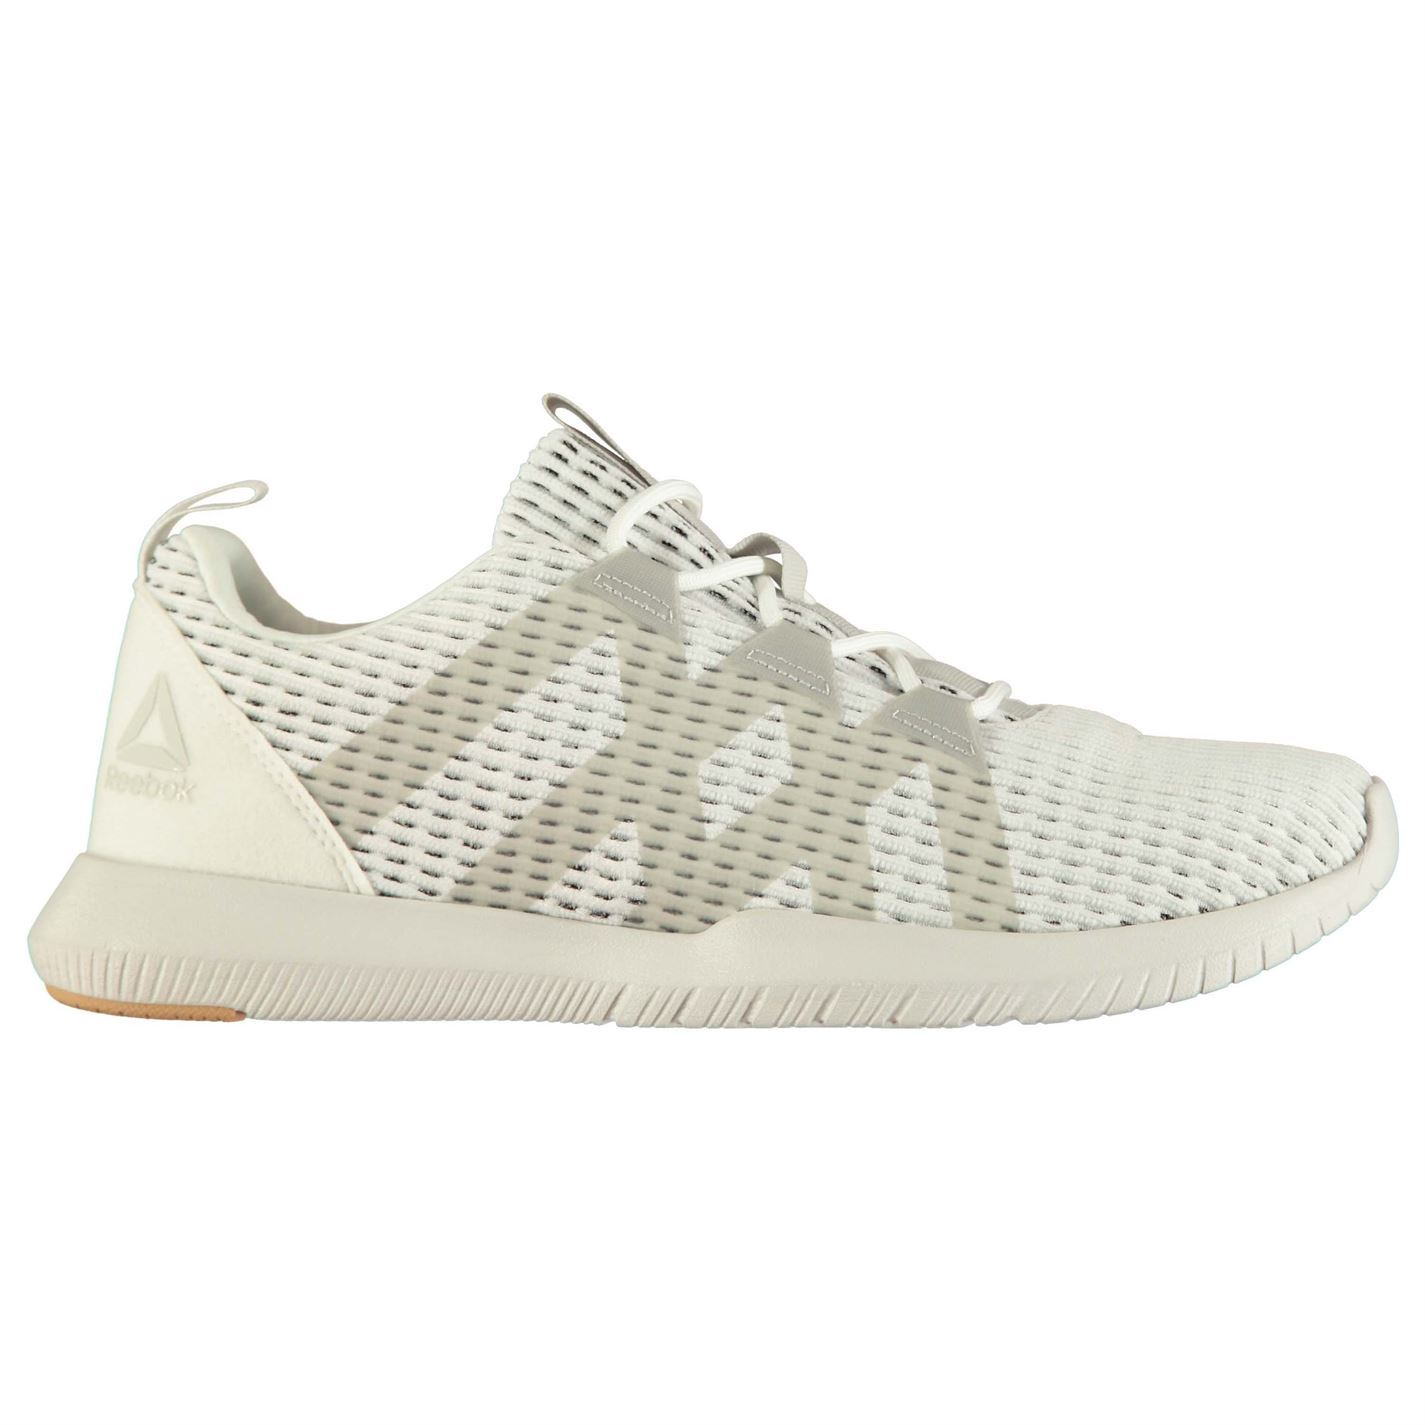 Reebok Reago Pulse Women/'s Training Shoes